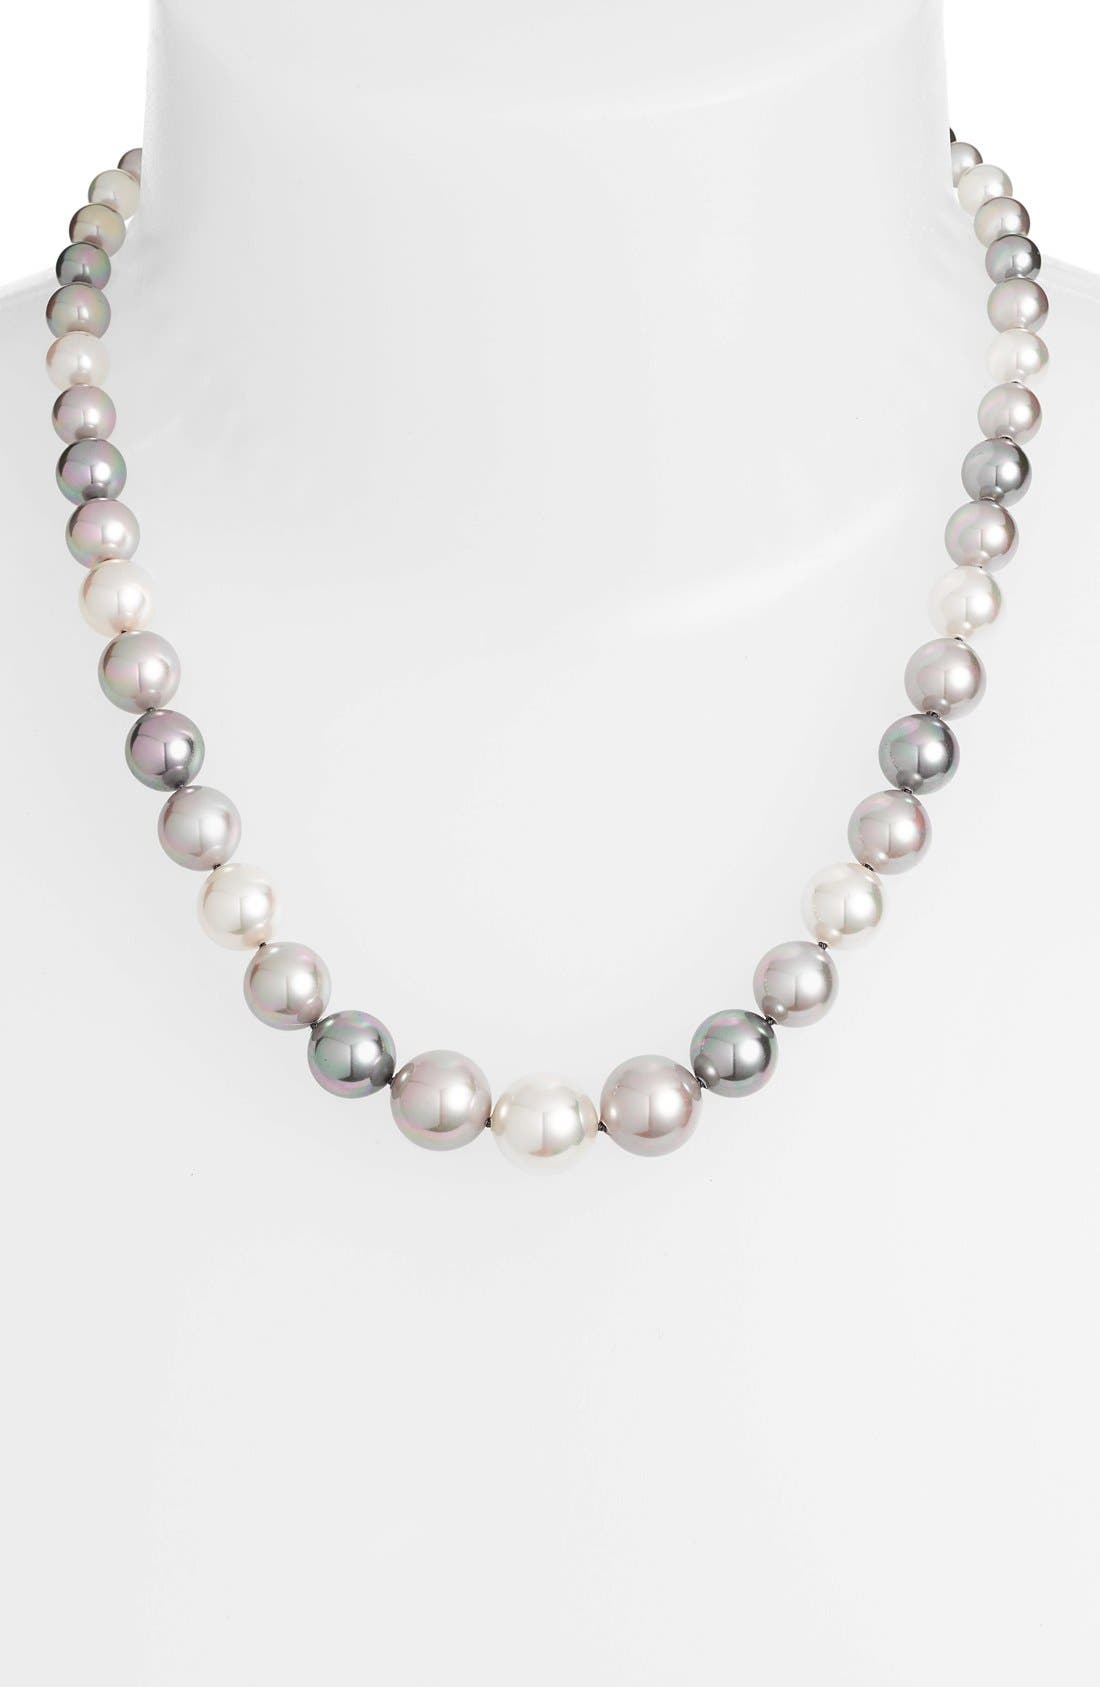 Graduated Round Simulated Pearl Necklace,                             Alternate thumbnail 2, color,                             020